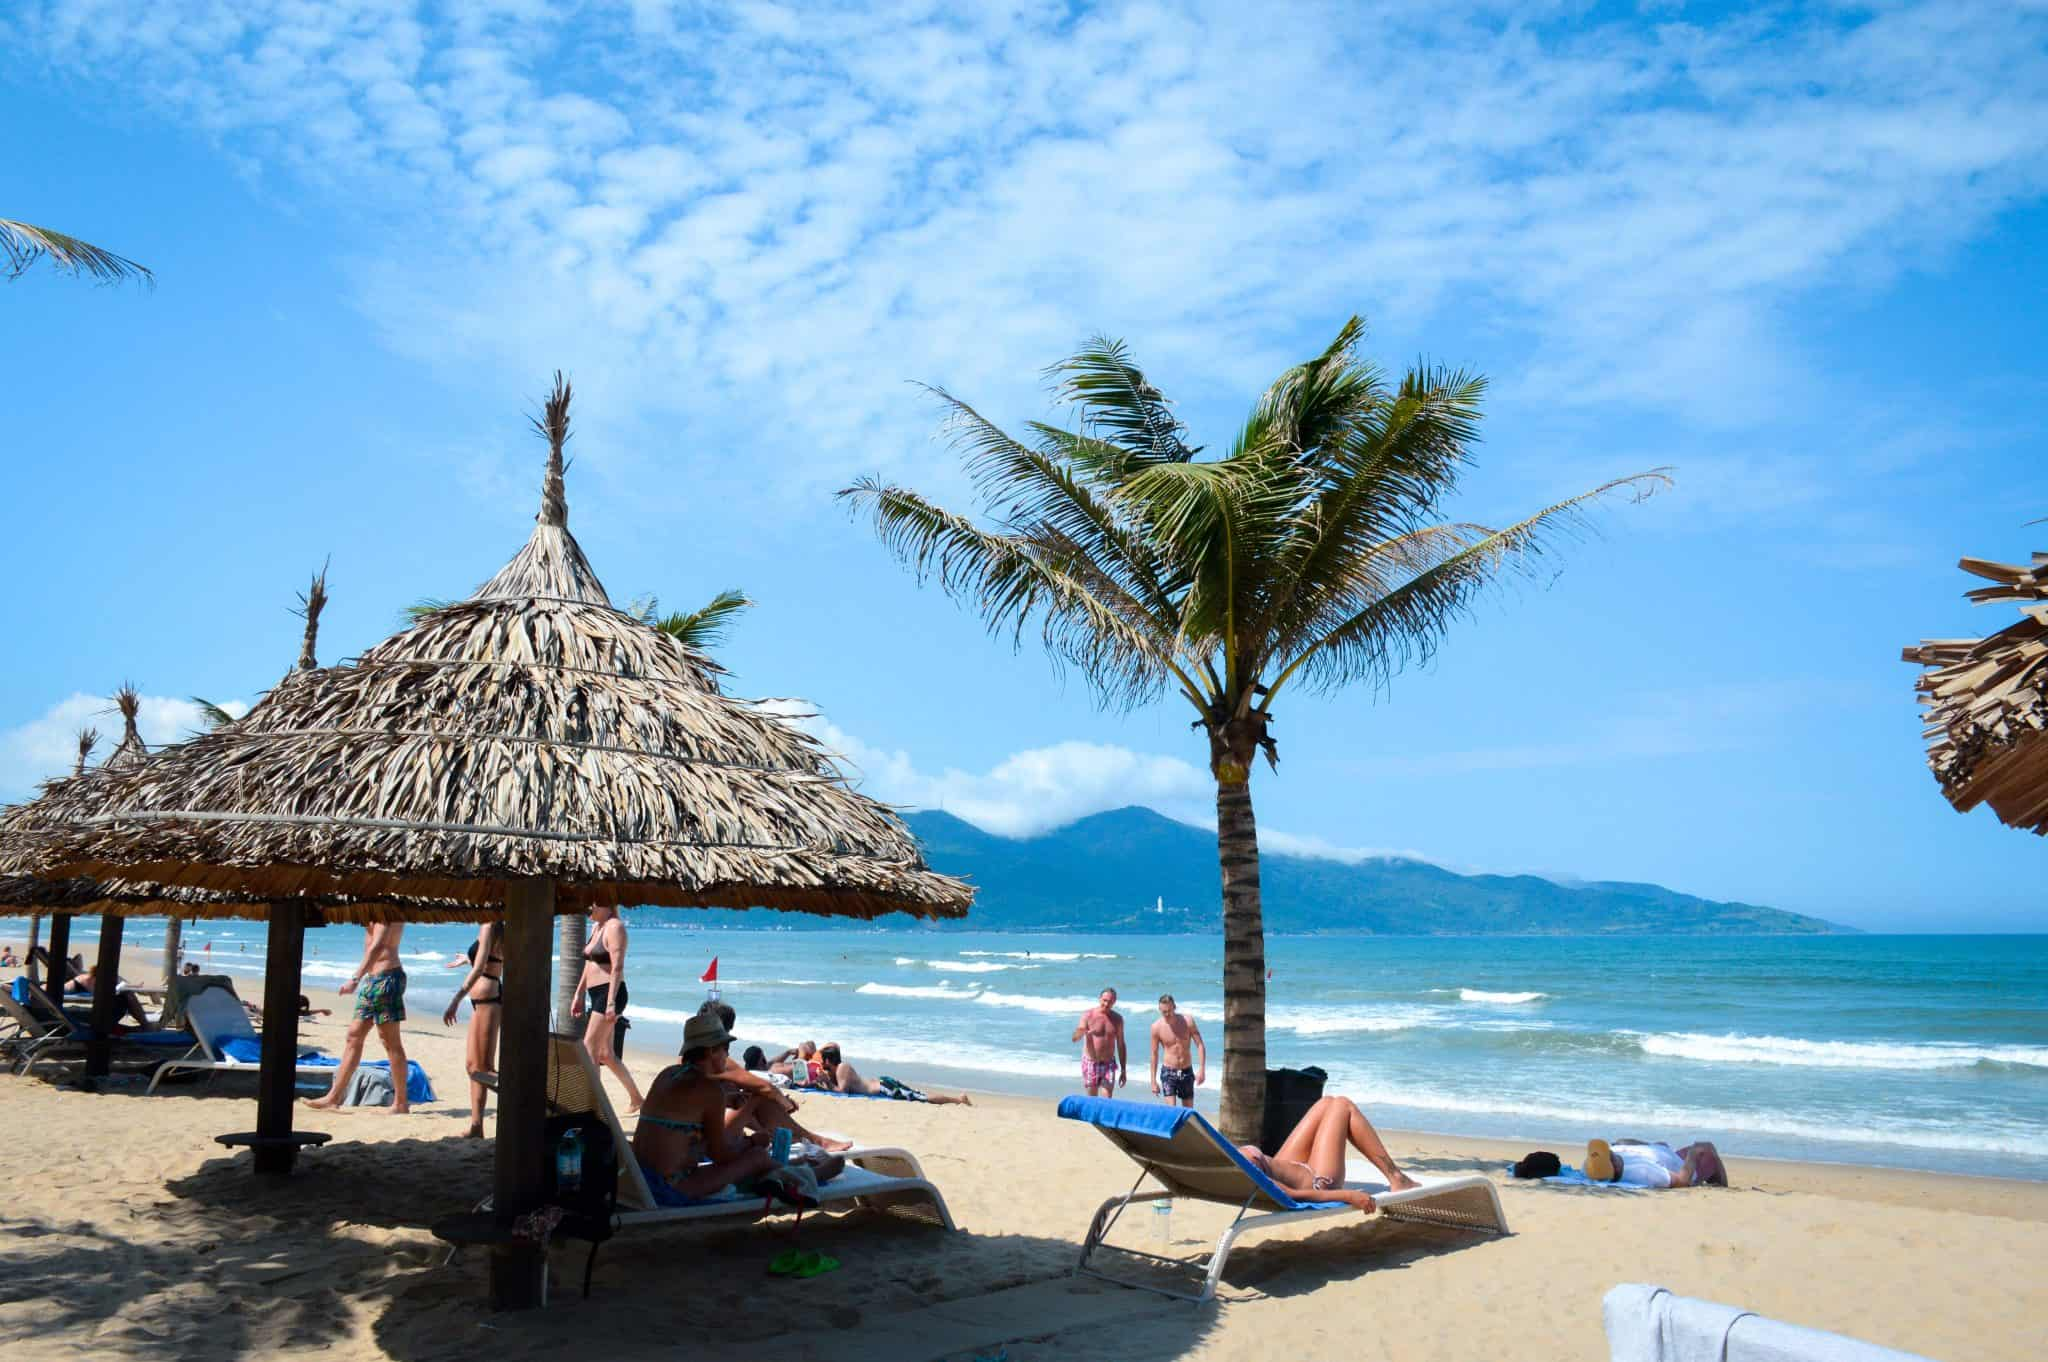 Seasons in Terms of Tourism Volume in Danang